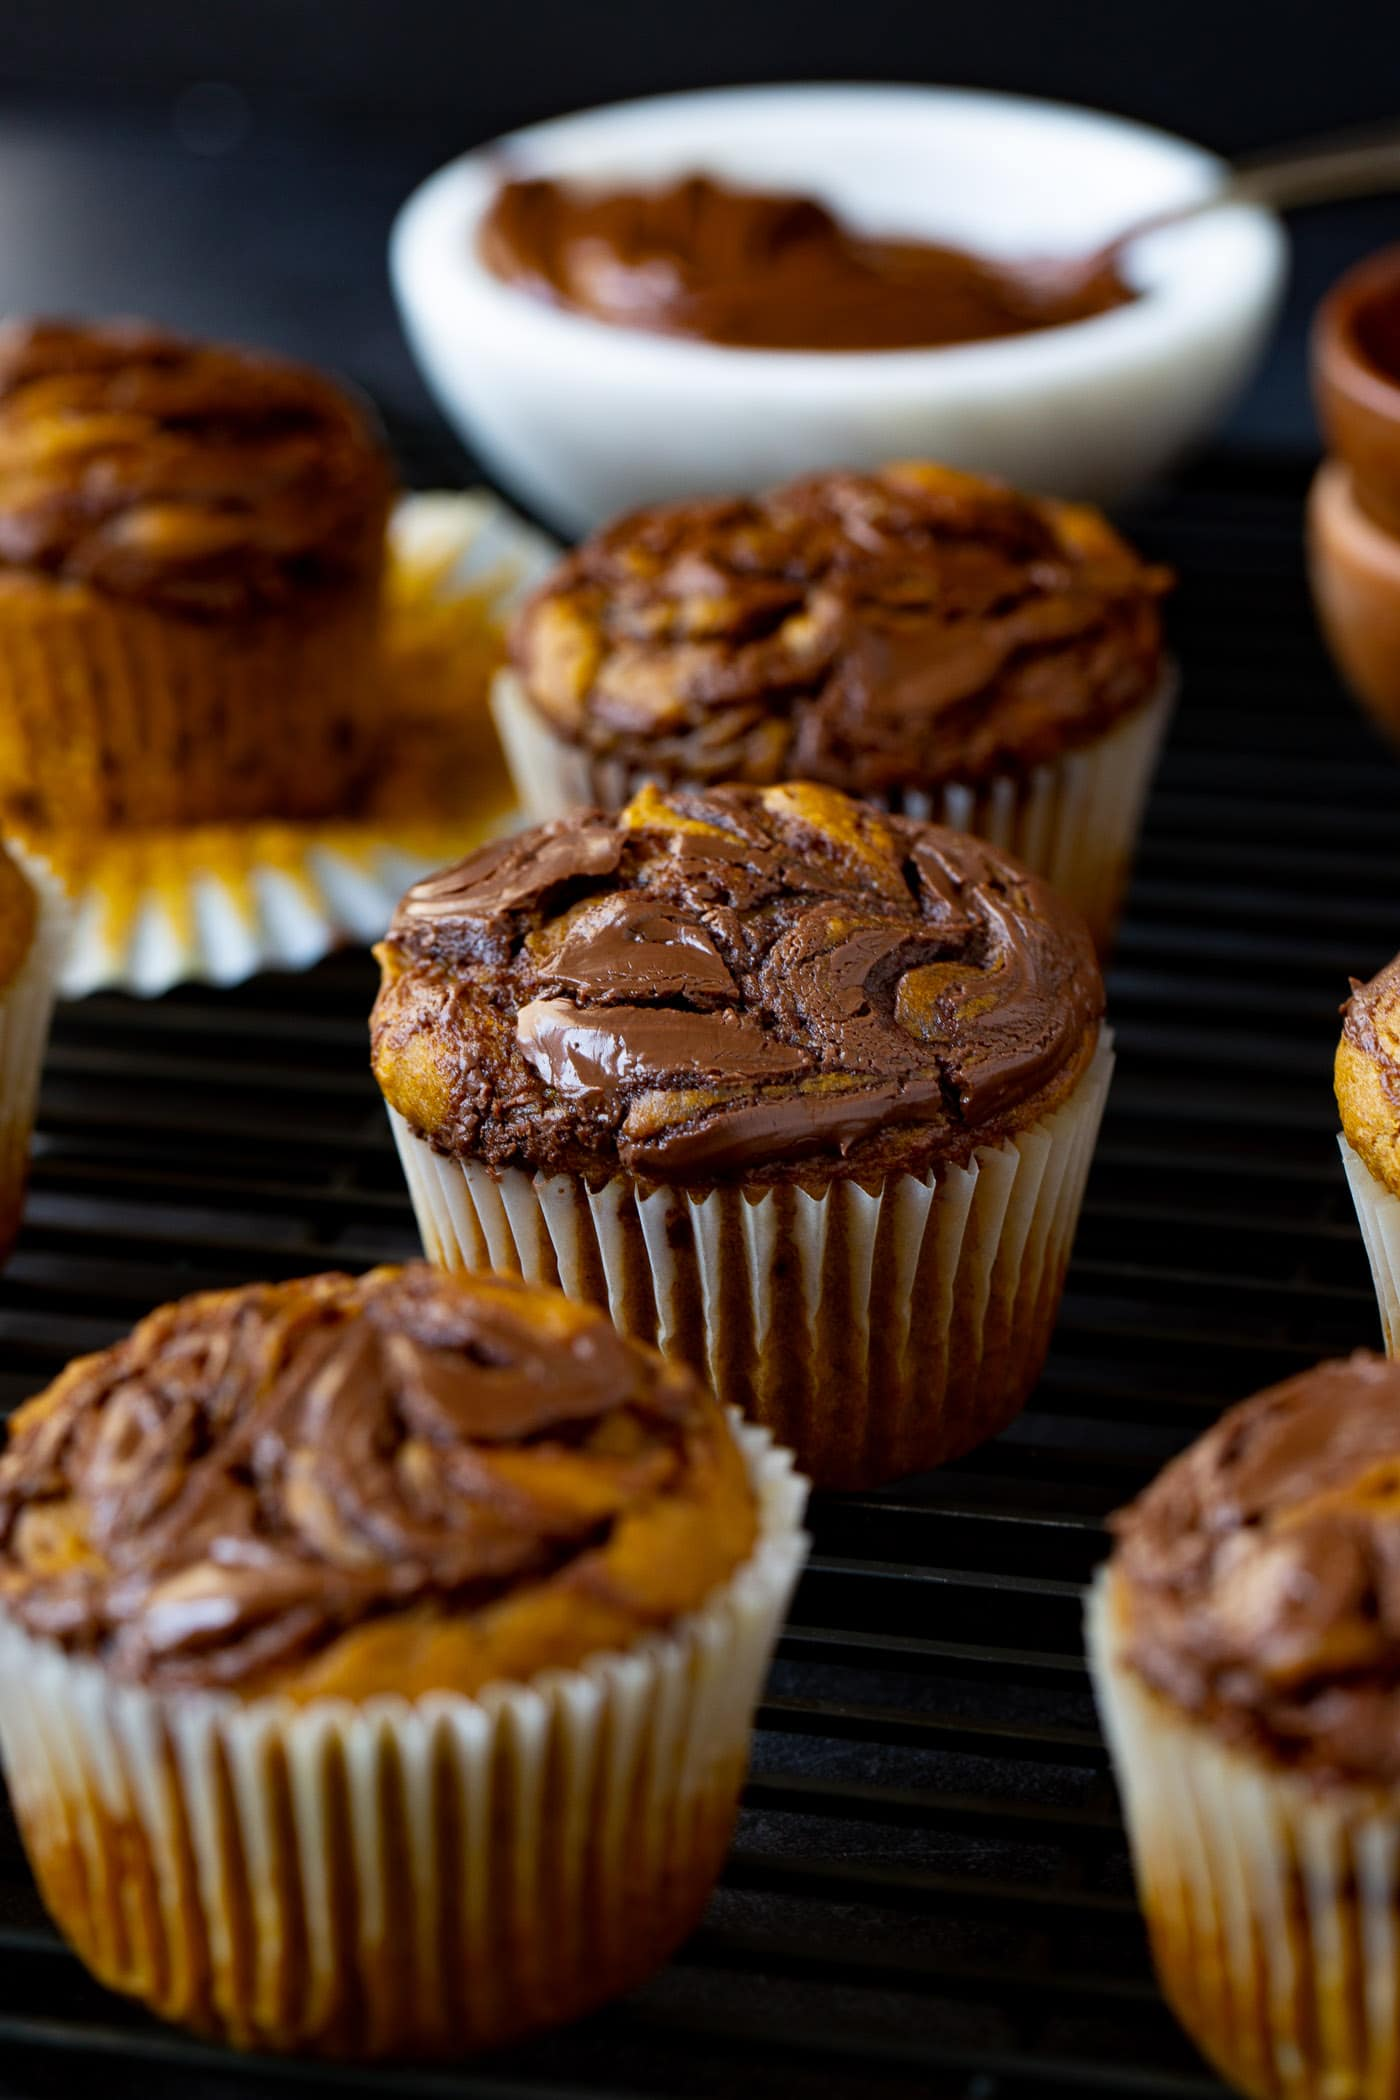 Nutella swirled pumpkin muffins. The paper liner has been peeled back on one muffin so you can see the pumpkin with the nutella swirled in it.